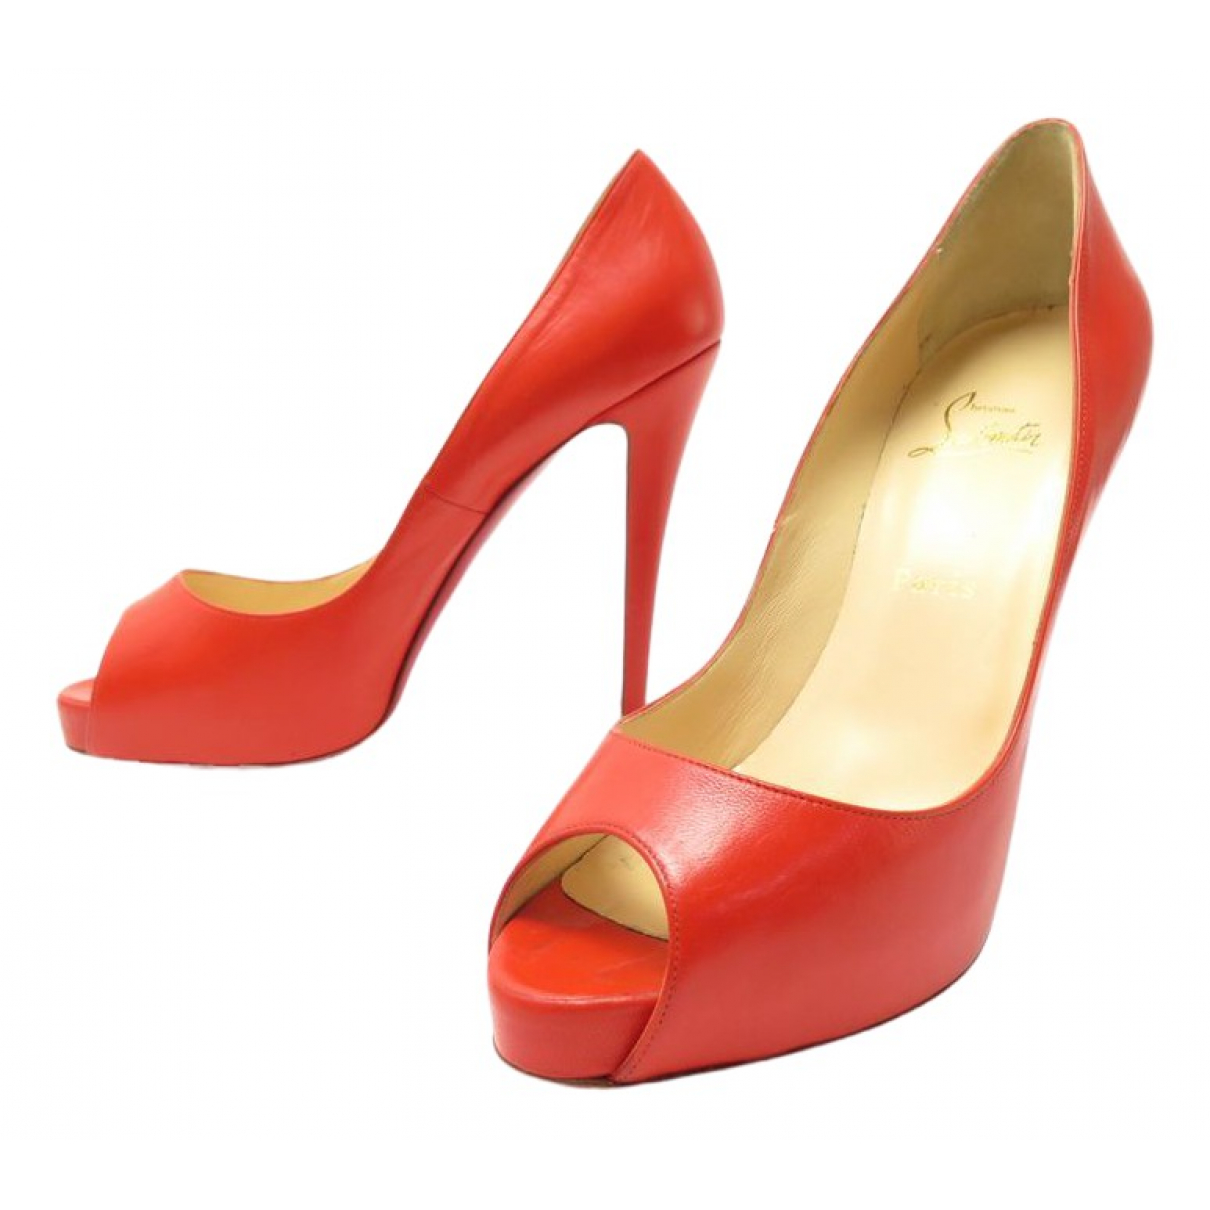 Christian Louboutin \N Red Leather Sandals for Women 36 EU